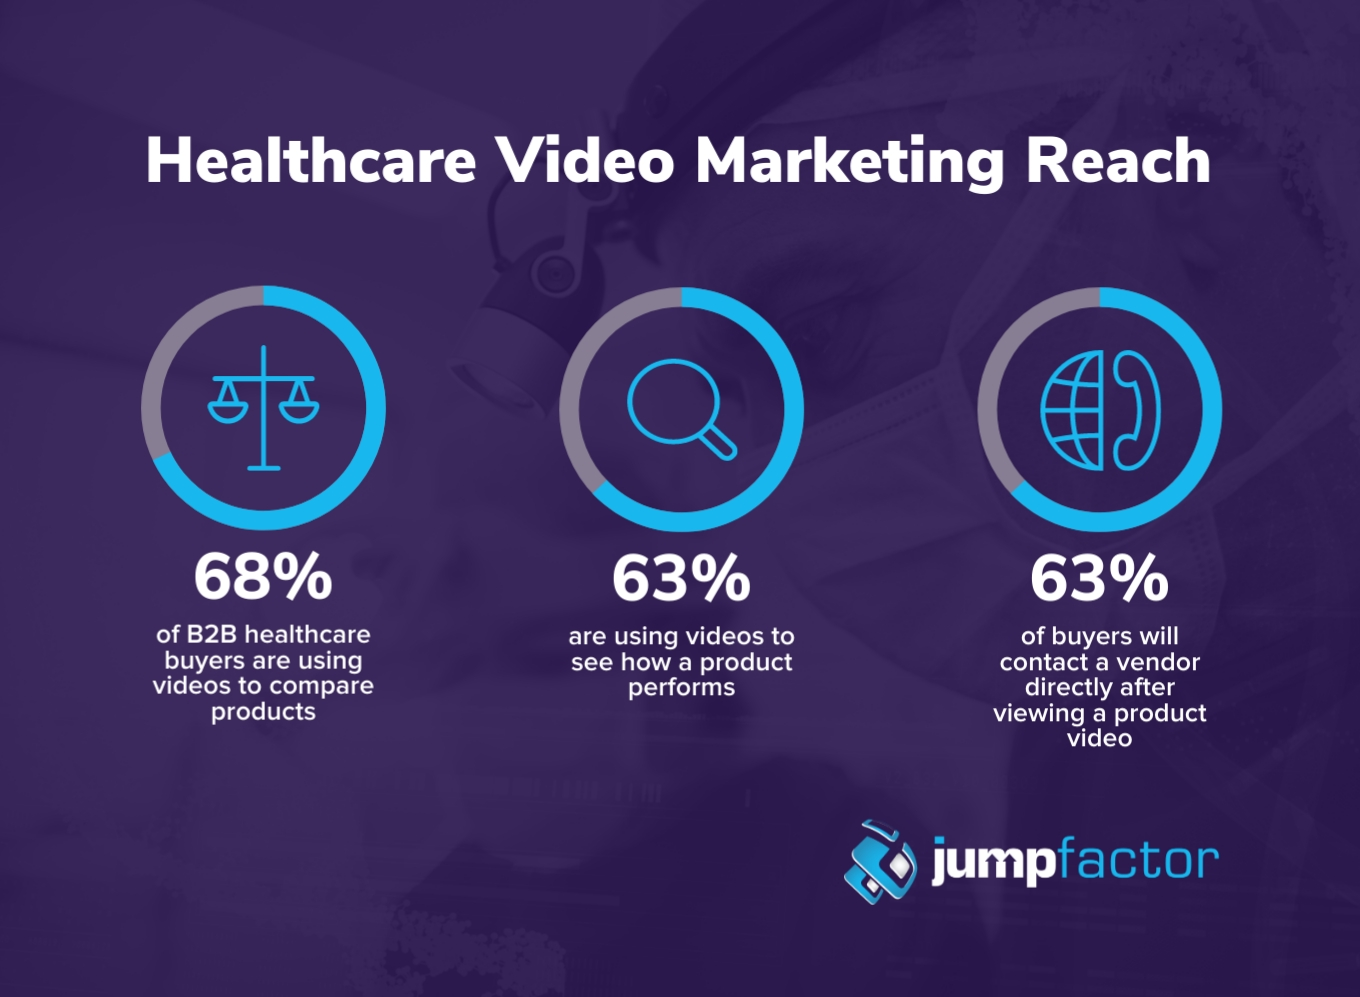 Healthcare video marketing